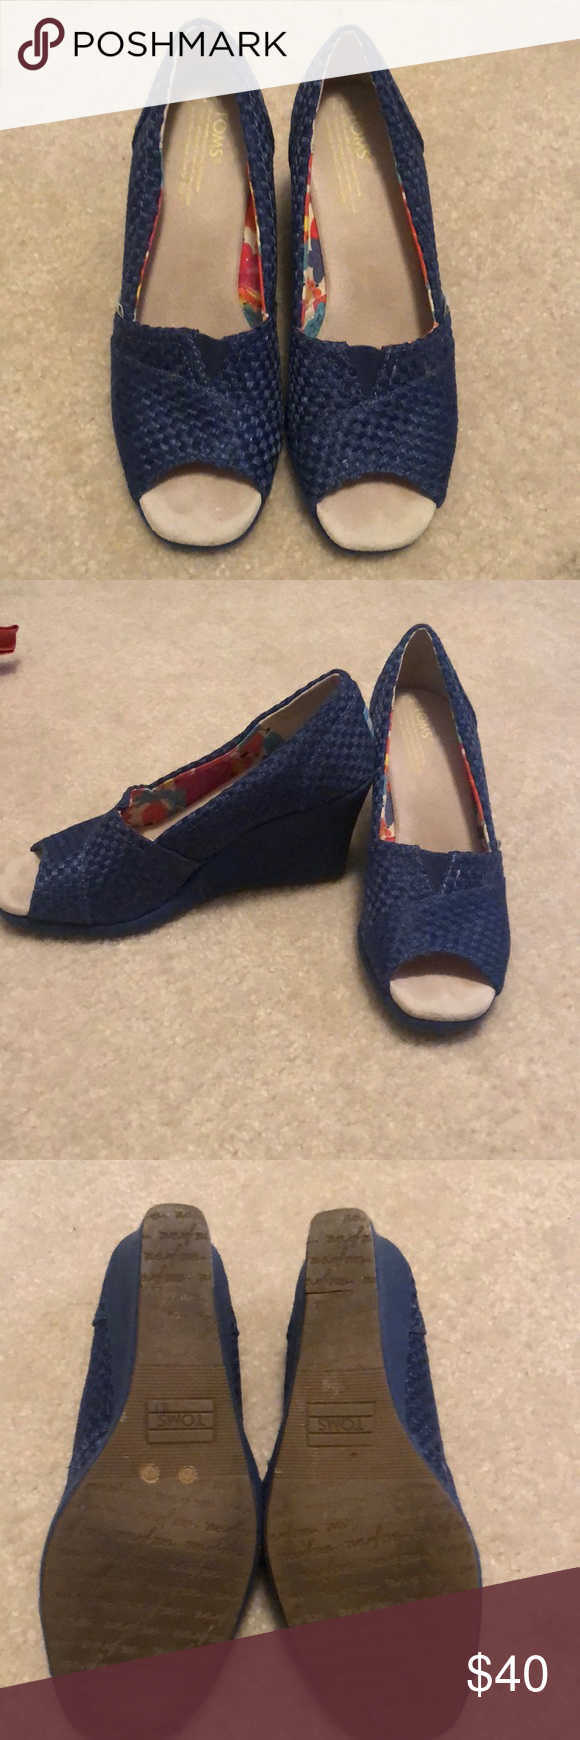 Toms Wedges Barely worn - royal blue Toms wedges Toms Shoes Wedges #tomwedges Toms Wedges Barely worn - royal blue Toms wedges Toms Shoes Wedges #tomwedges